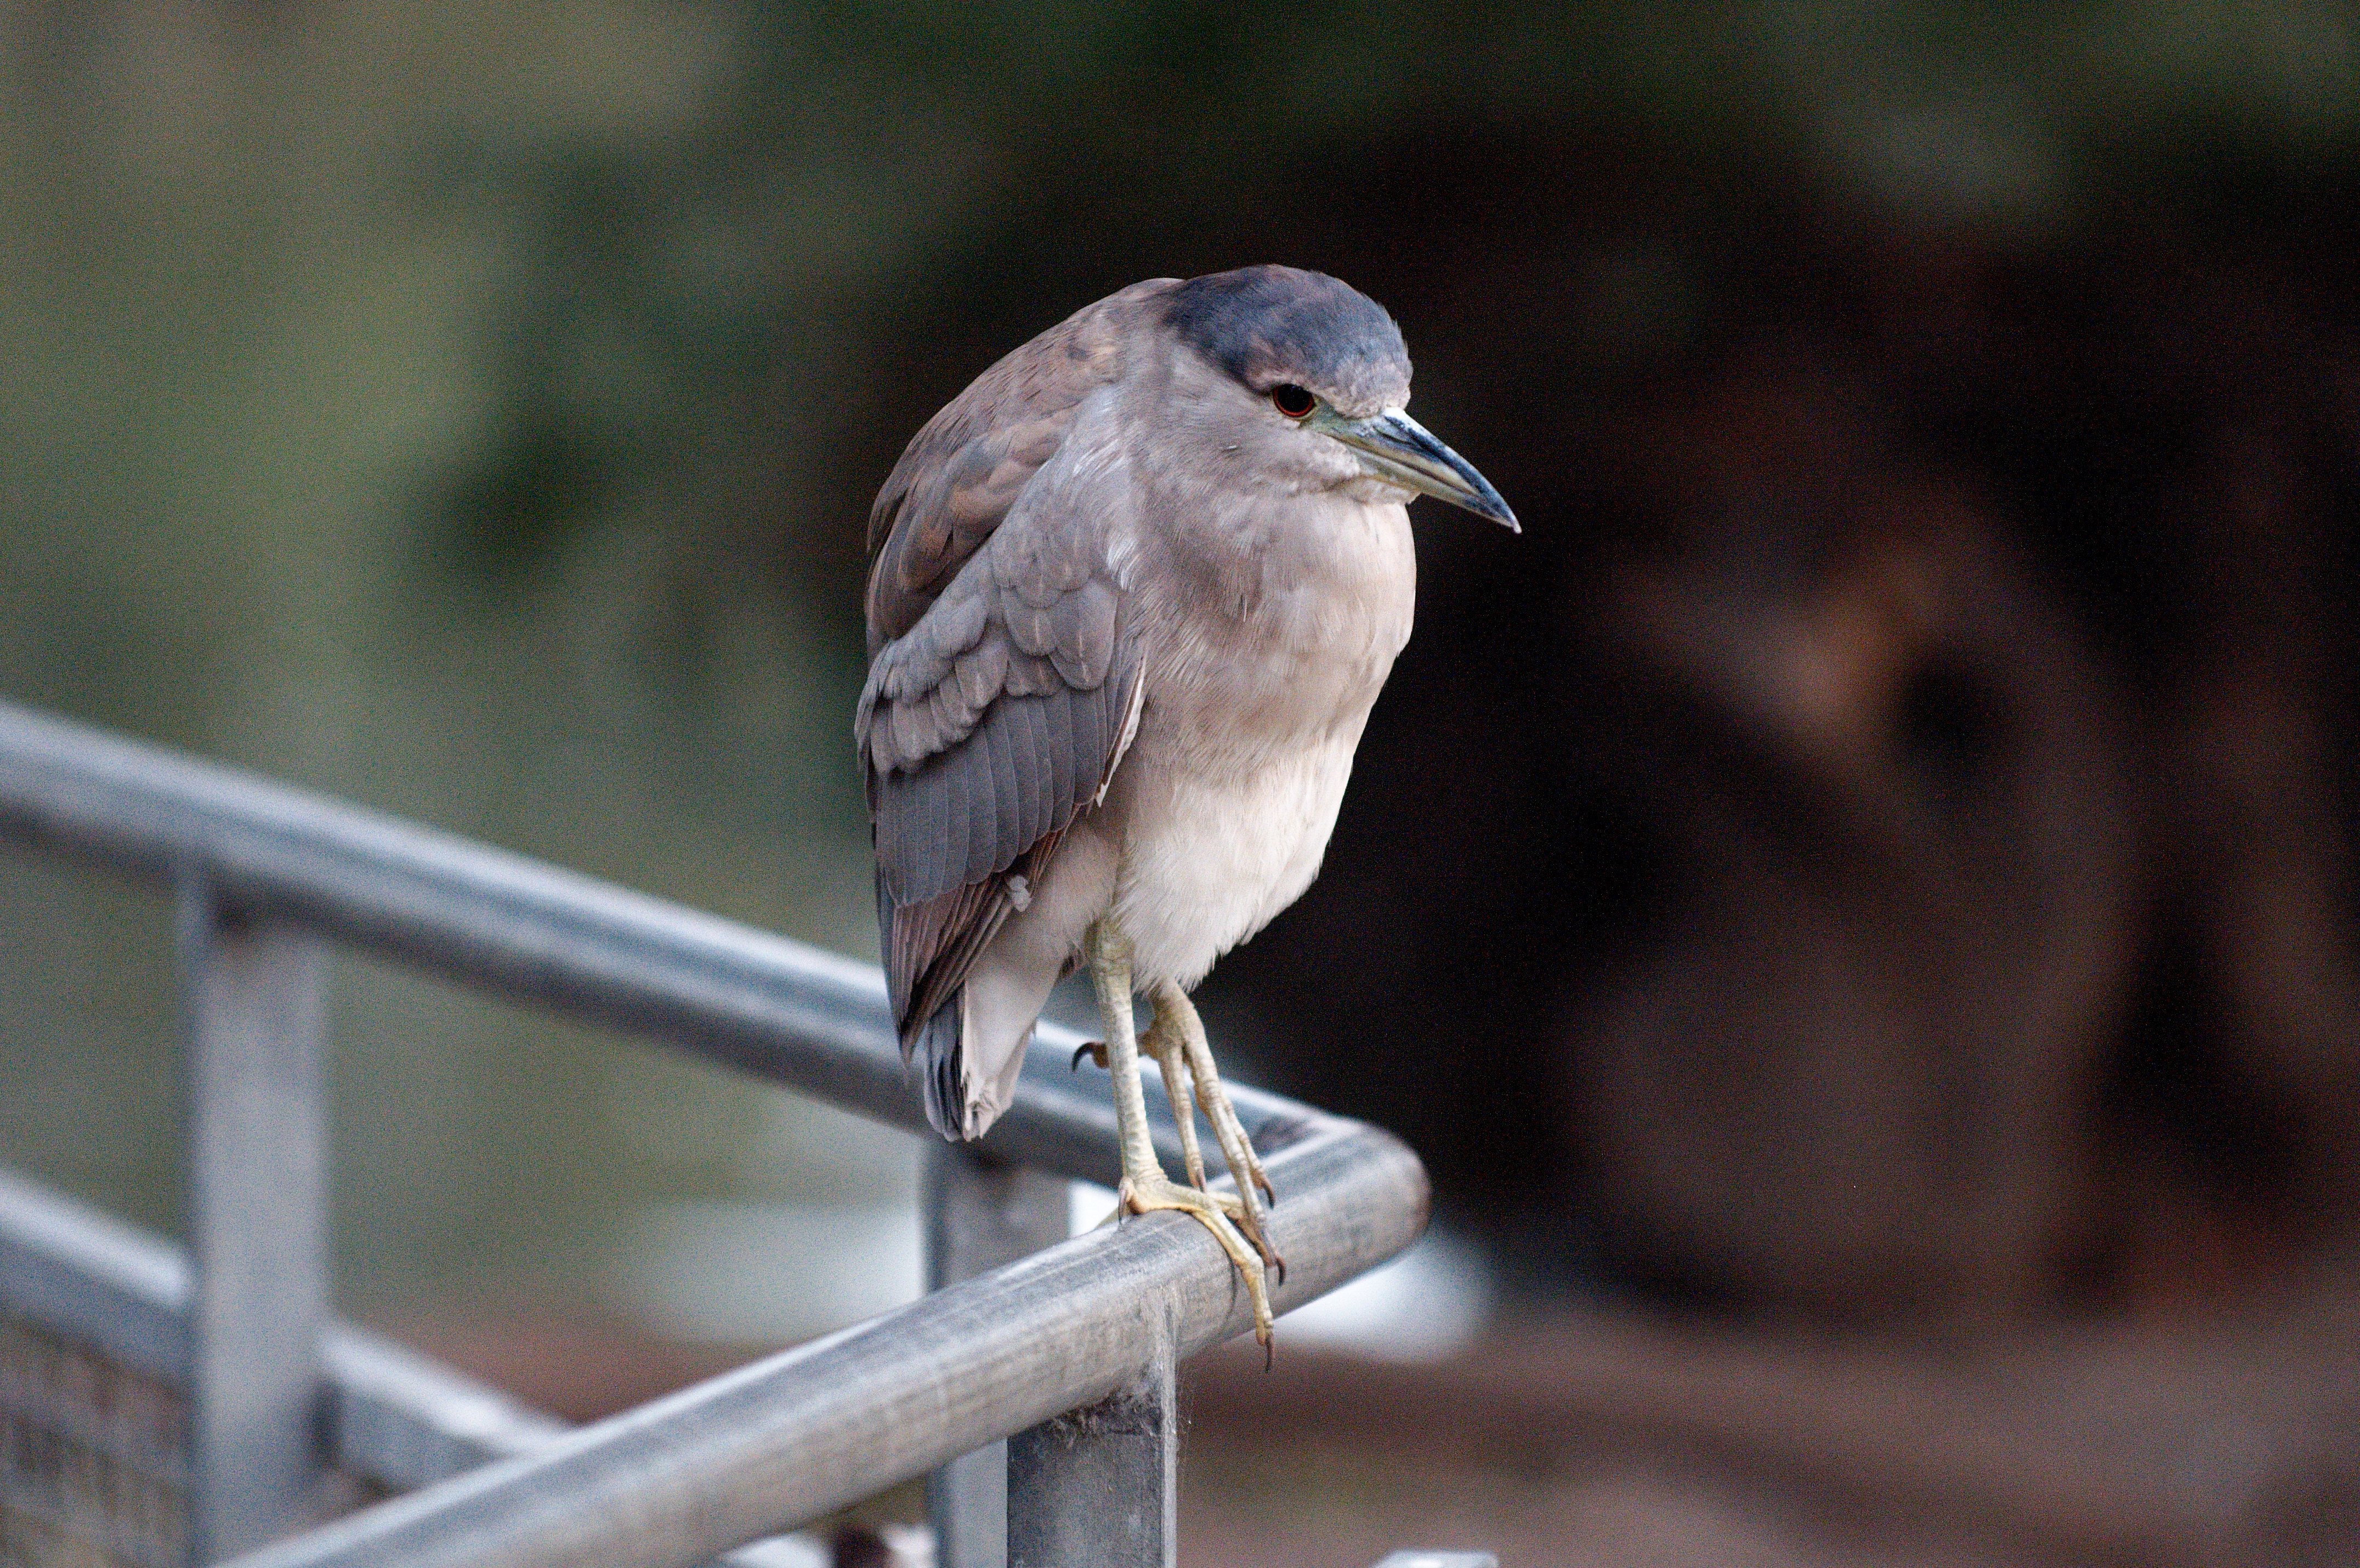 Immature black-crowned night heron perched on metal railing photo